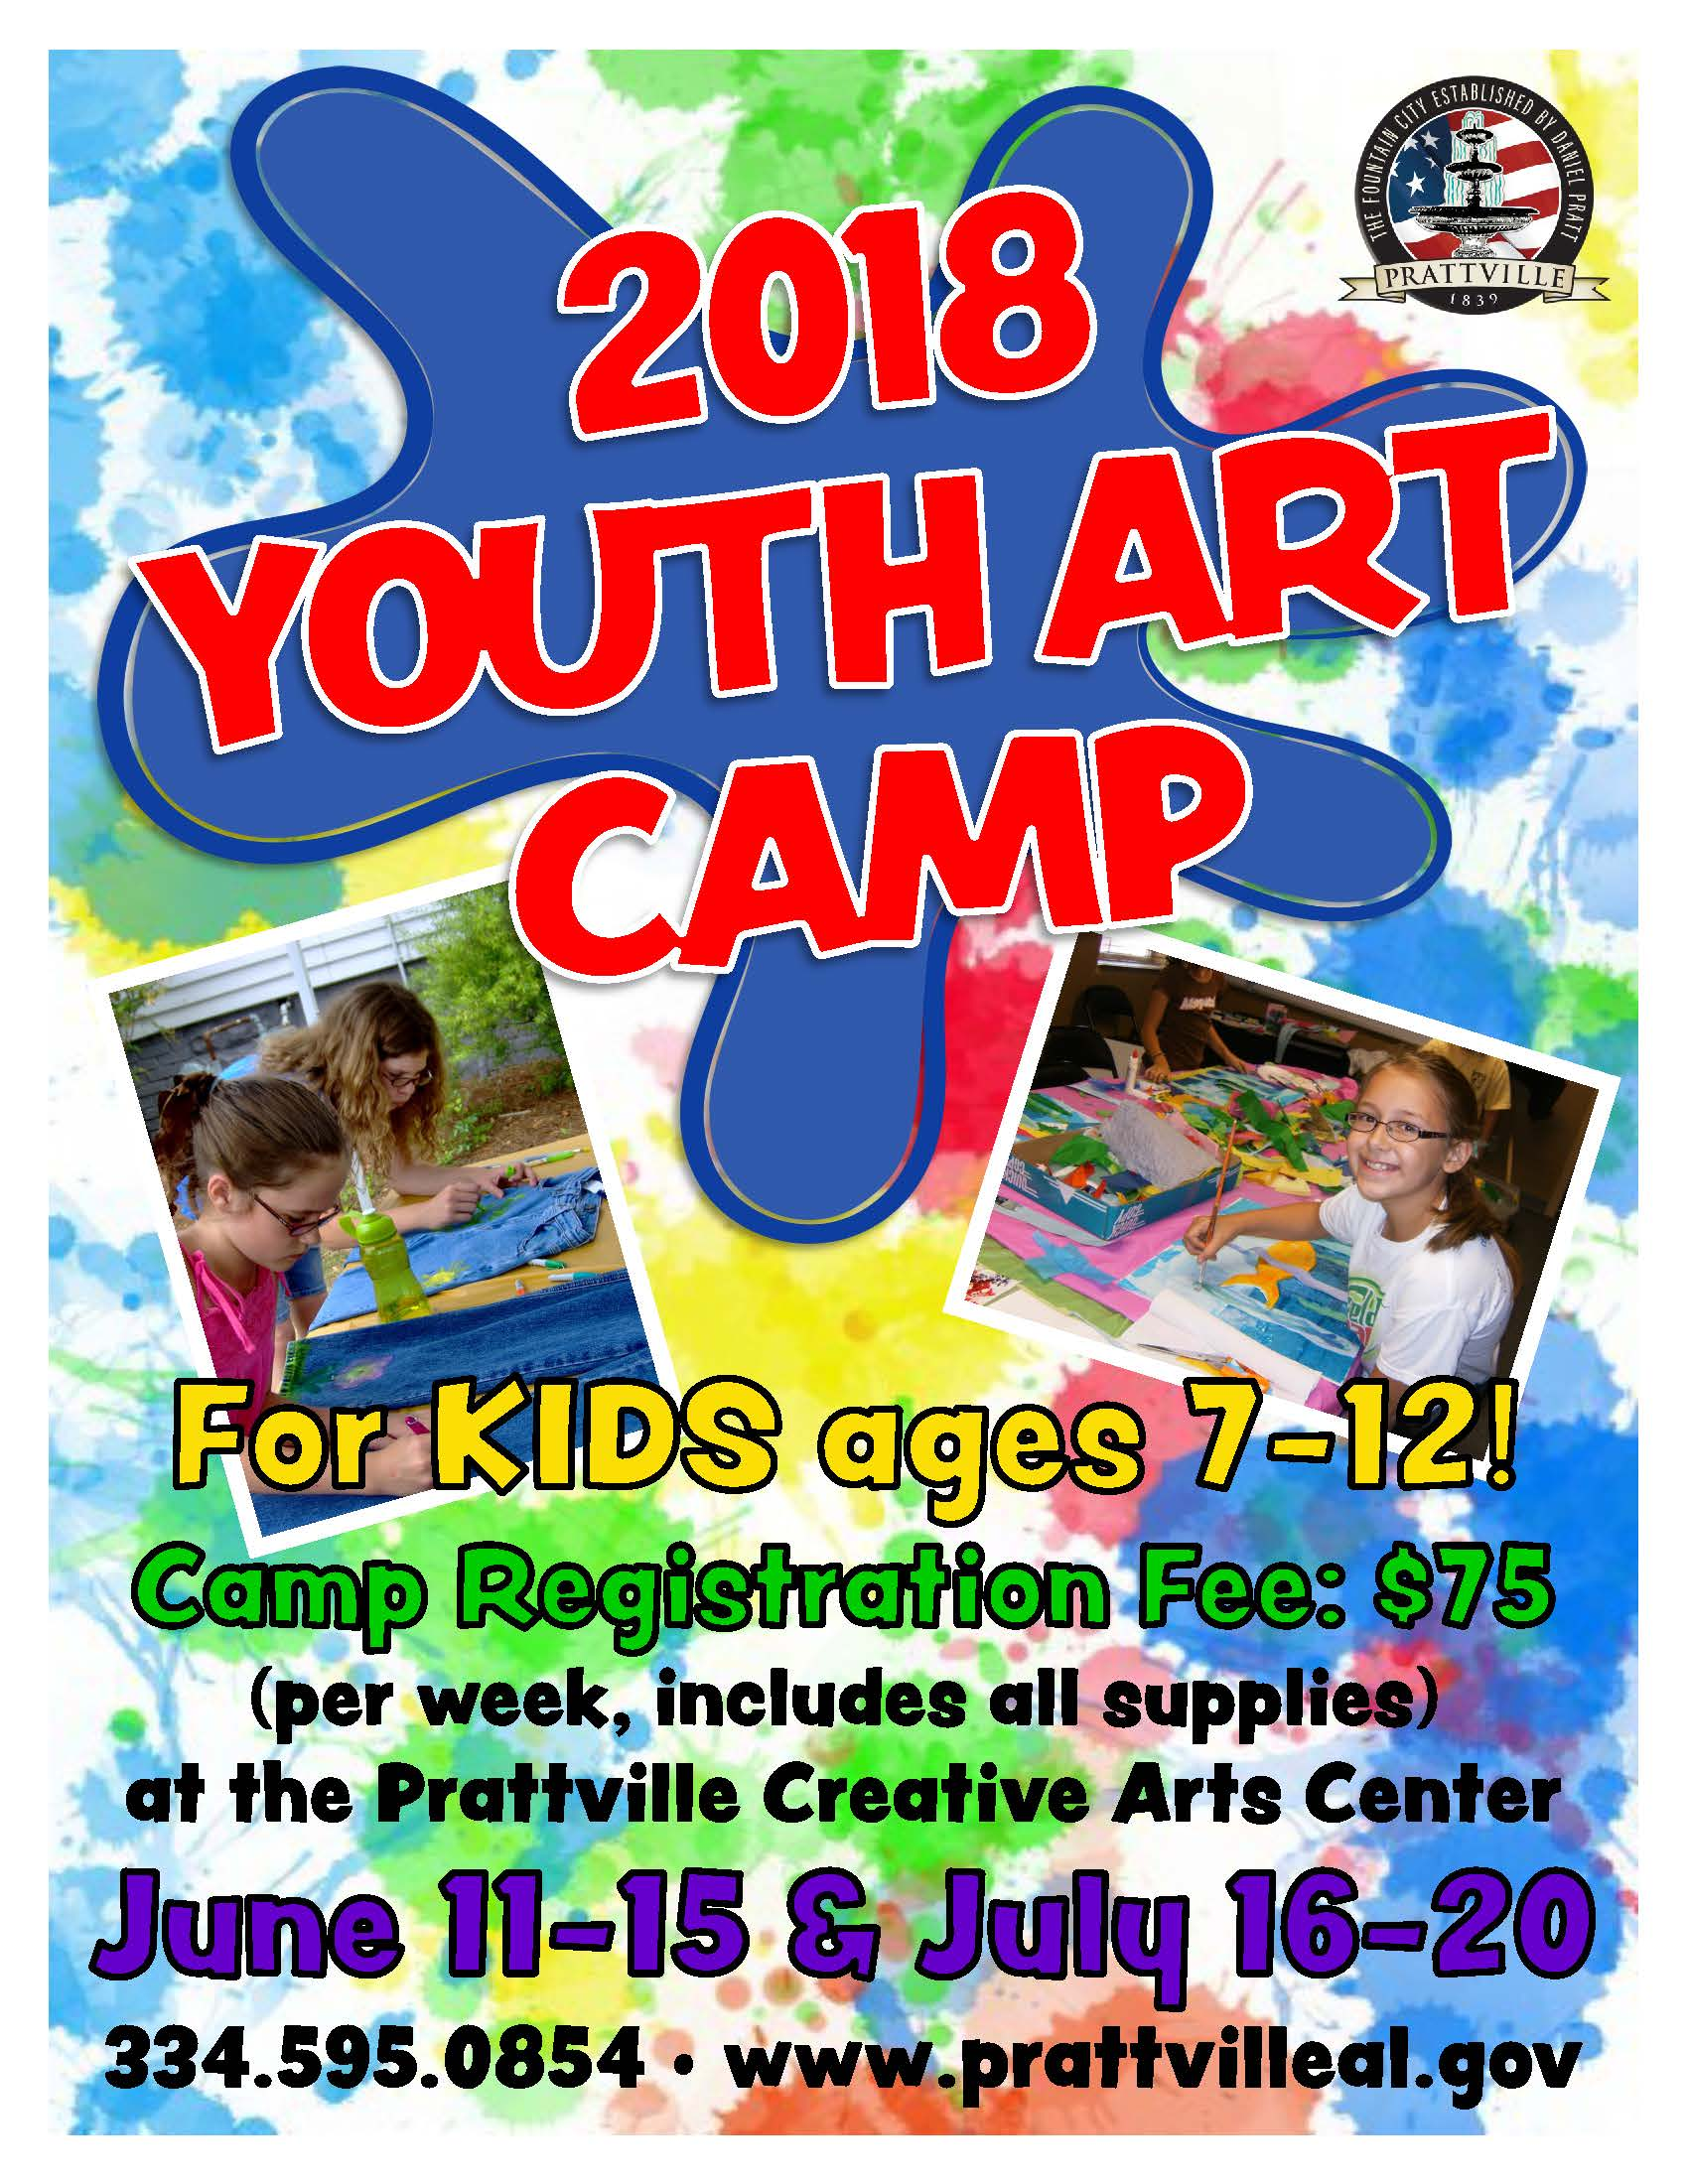 2018 Youth Art Camp Page 1